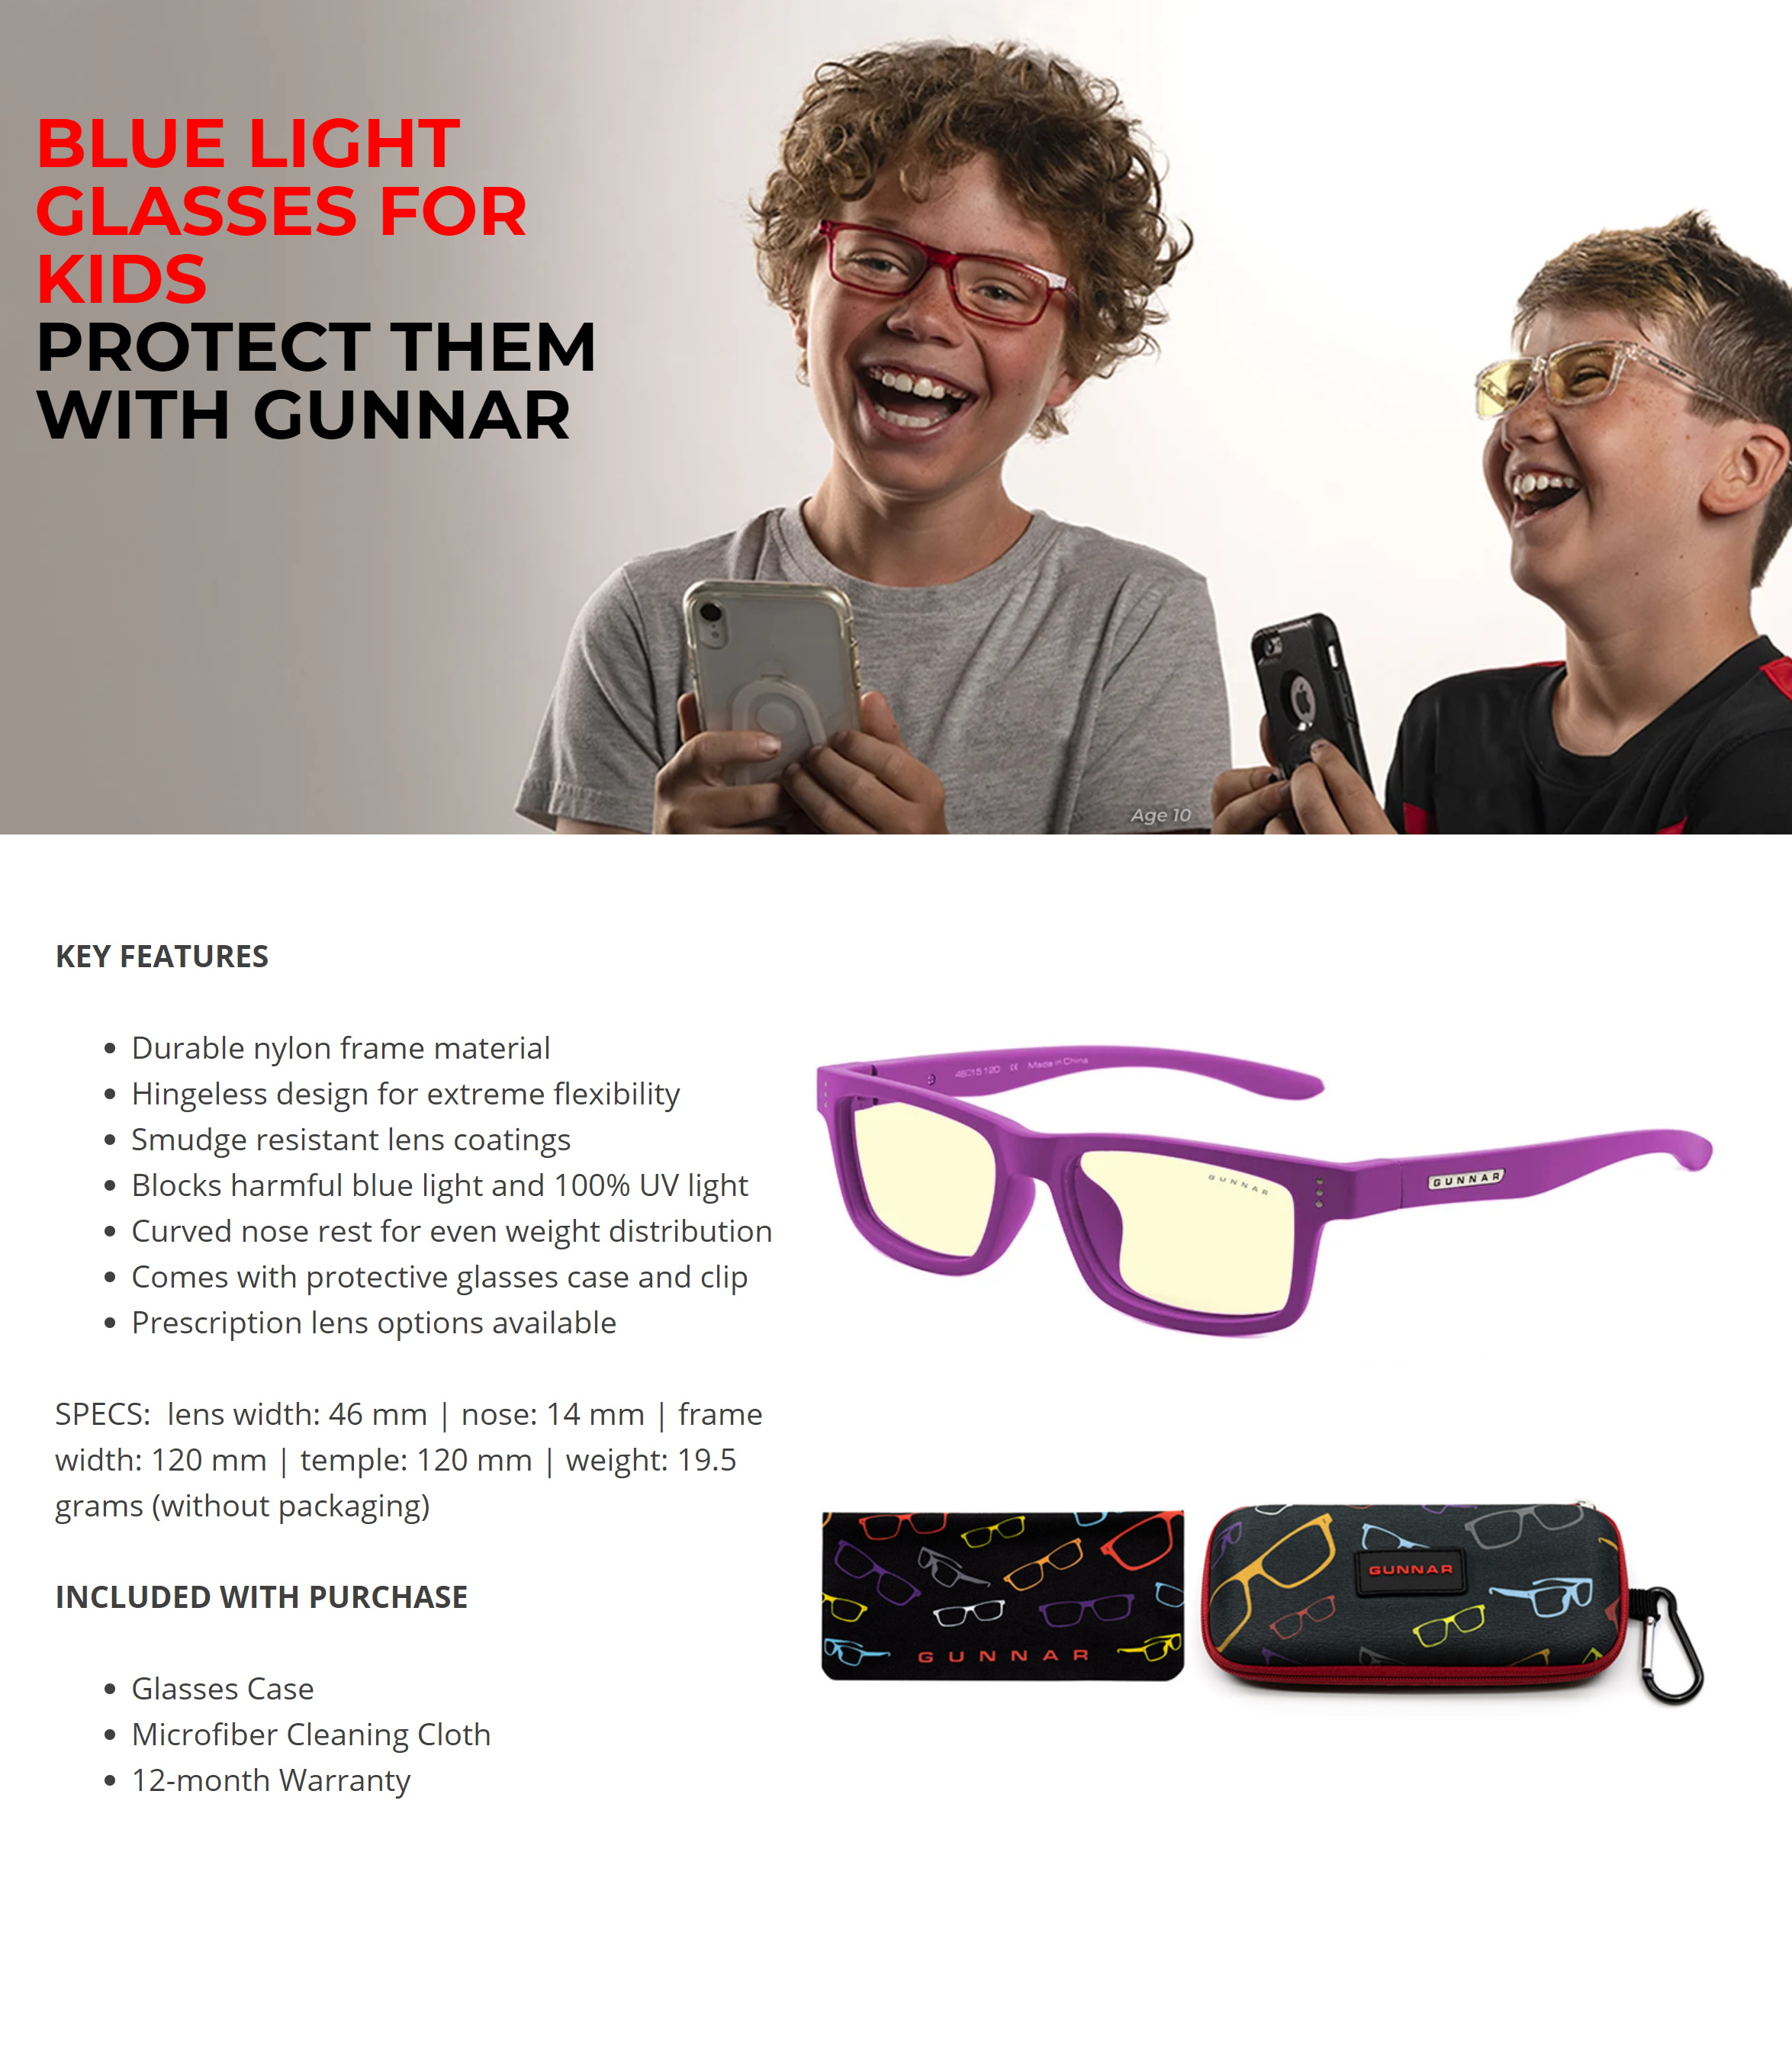 A large marketing image providing additional information about the product Gunnar Cruz Kids Amber Magenta Indoor Digital Eyewear Small - Additional alt info not provided